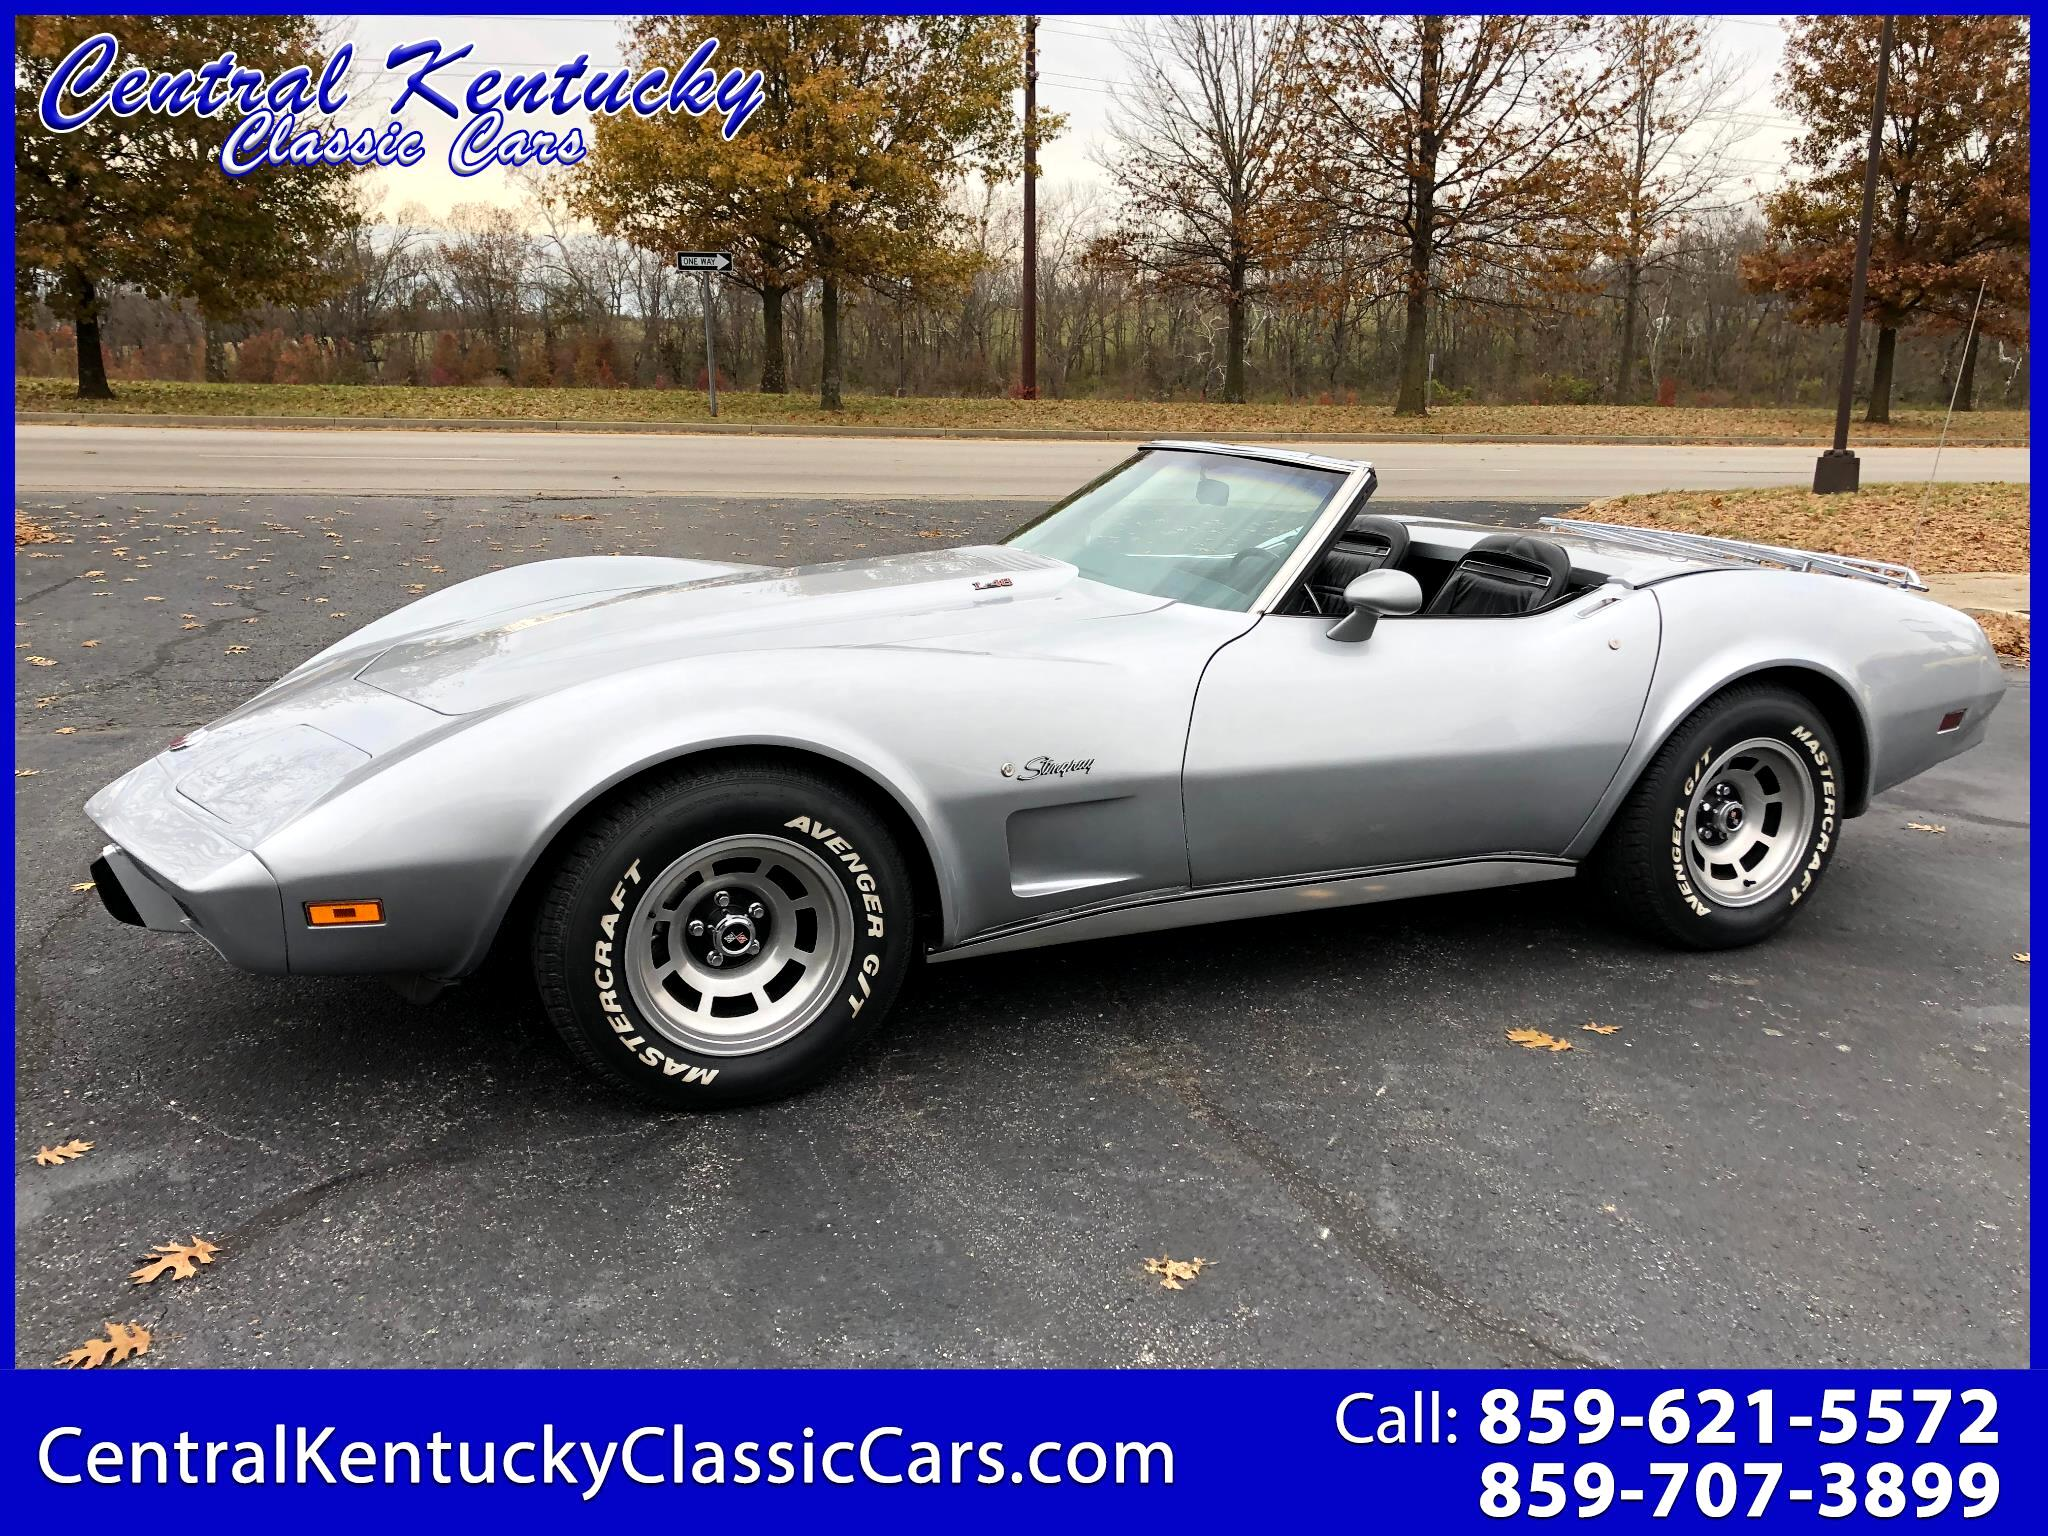 Chevrolet Corvette Stingray Convertible  1975